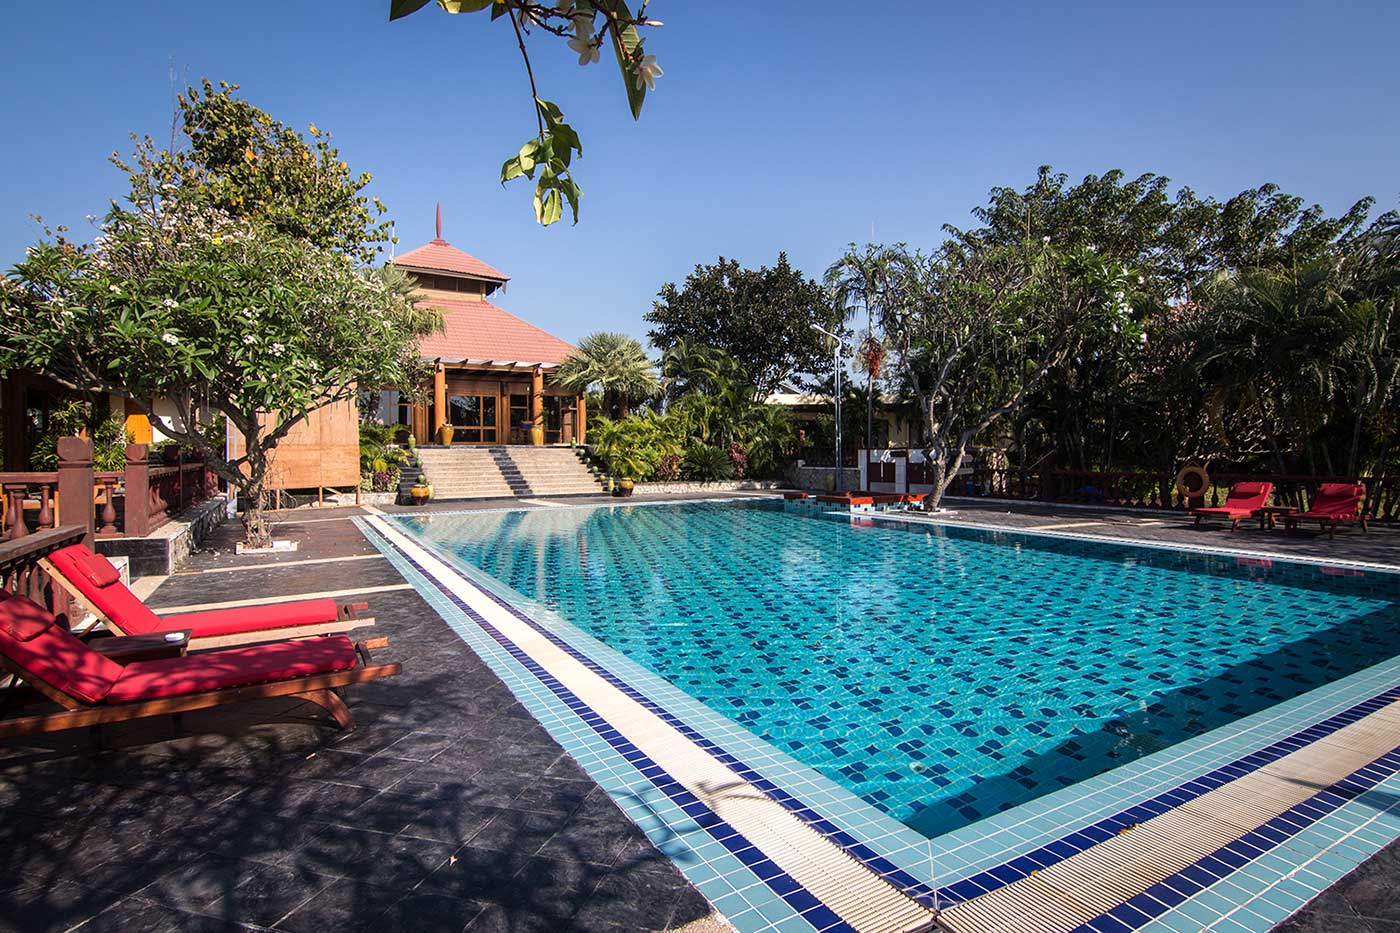 Swimming pool and sun loungers at Naypyidaw's Aureum Palace Hotel.